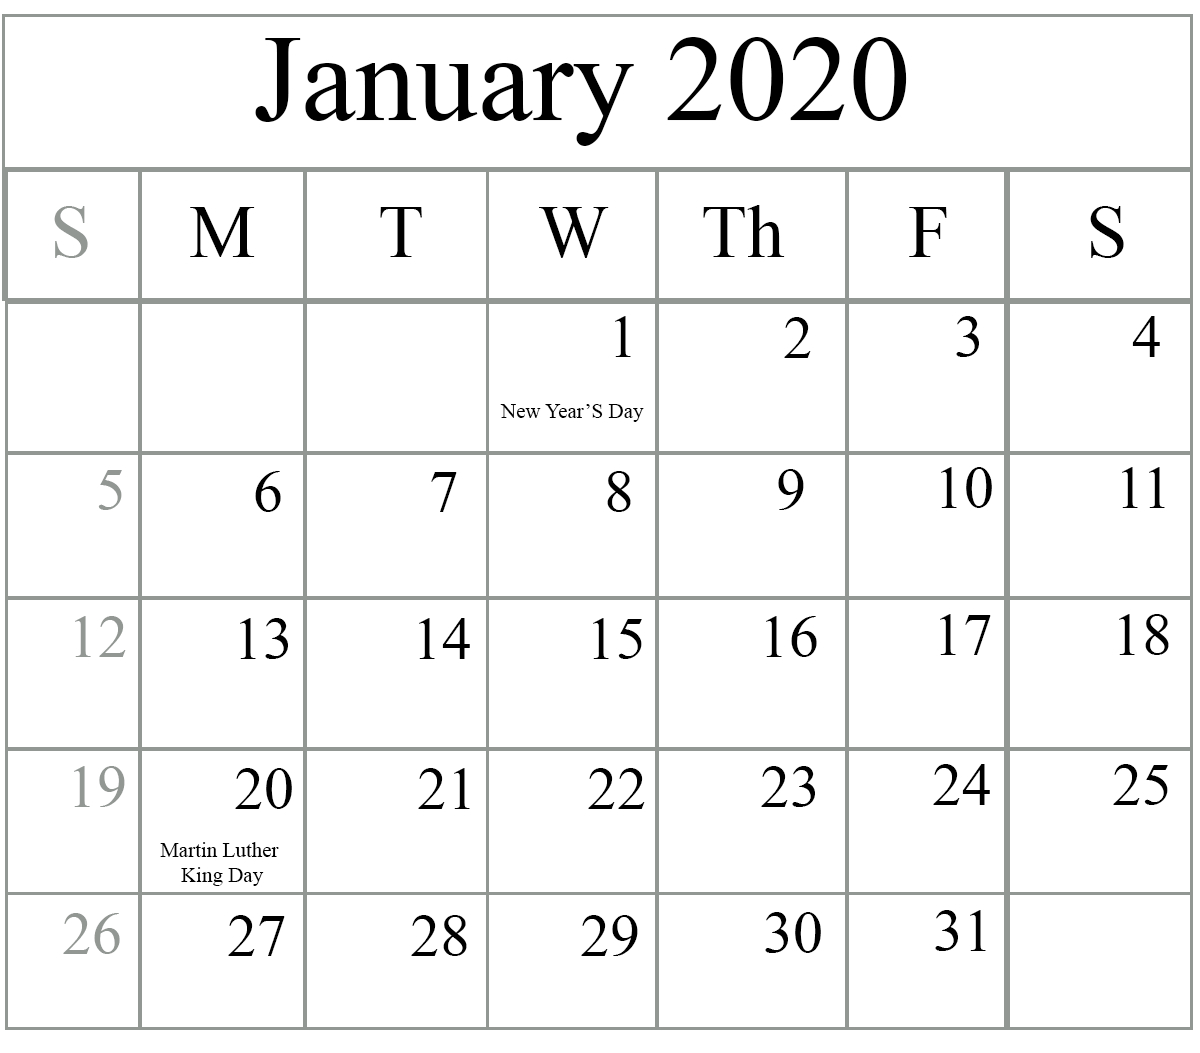 Free January 2020 Printable Calendar In Pdf, Excel & Word with 2020 Calendar Time And Date